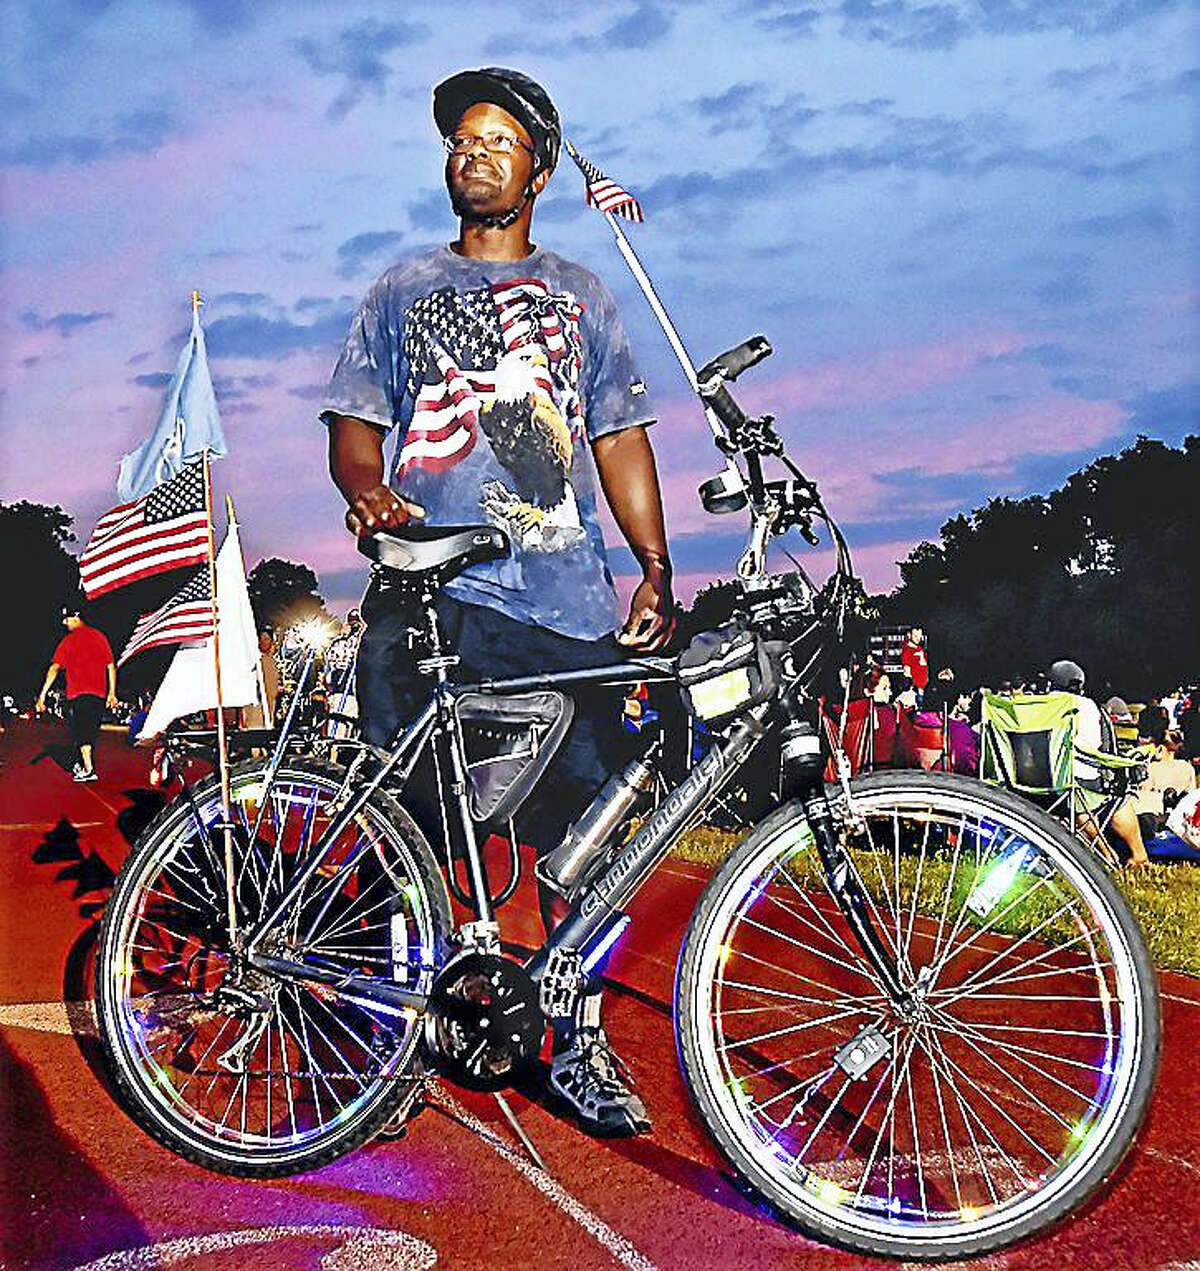 New Haven resident David Joyner and his Cannondale bicycle equipped with colorful lights on the wheels, several American Flags, a state of Connecticut flag and a horn takes a break from his ride at the Wilbur Cross High School Athletic Complex as the sunset creates a majestic sky, to join area residents for the city of New Haven's fireworks display on Independence Day.